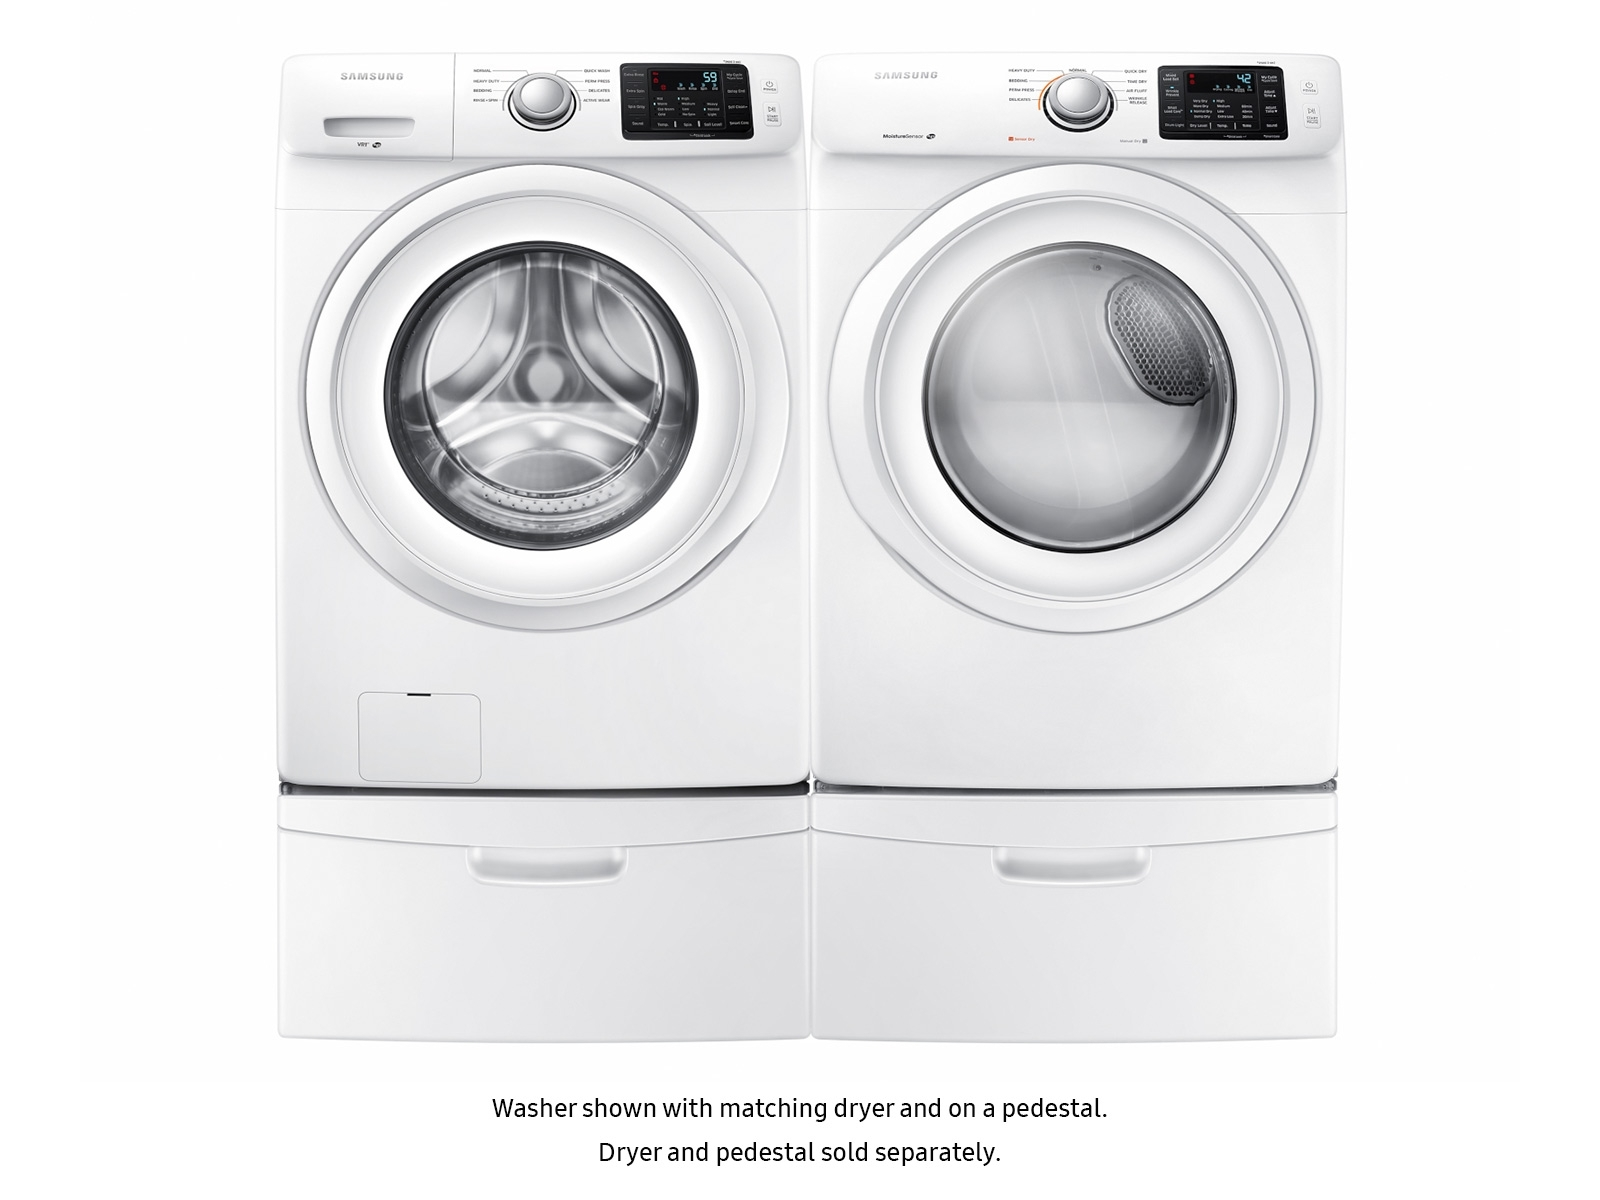 Duet Washer Wiring Diagram In Addition Refrigerator Wiring Diagram On